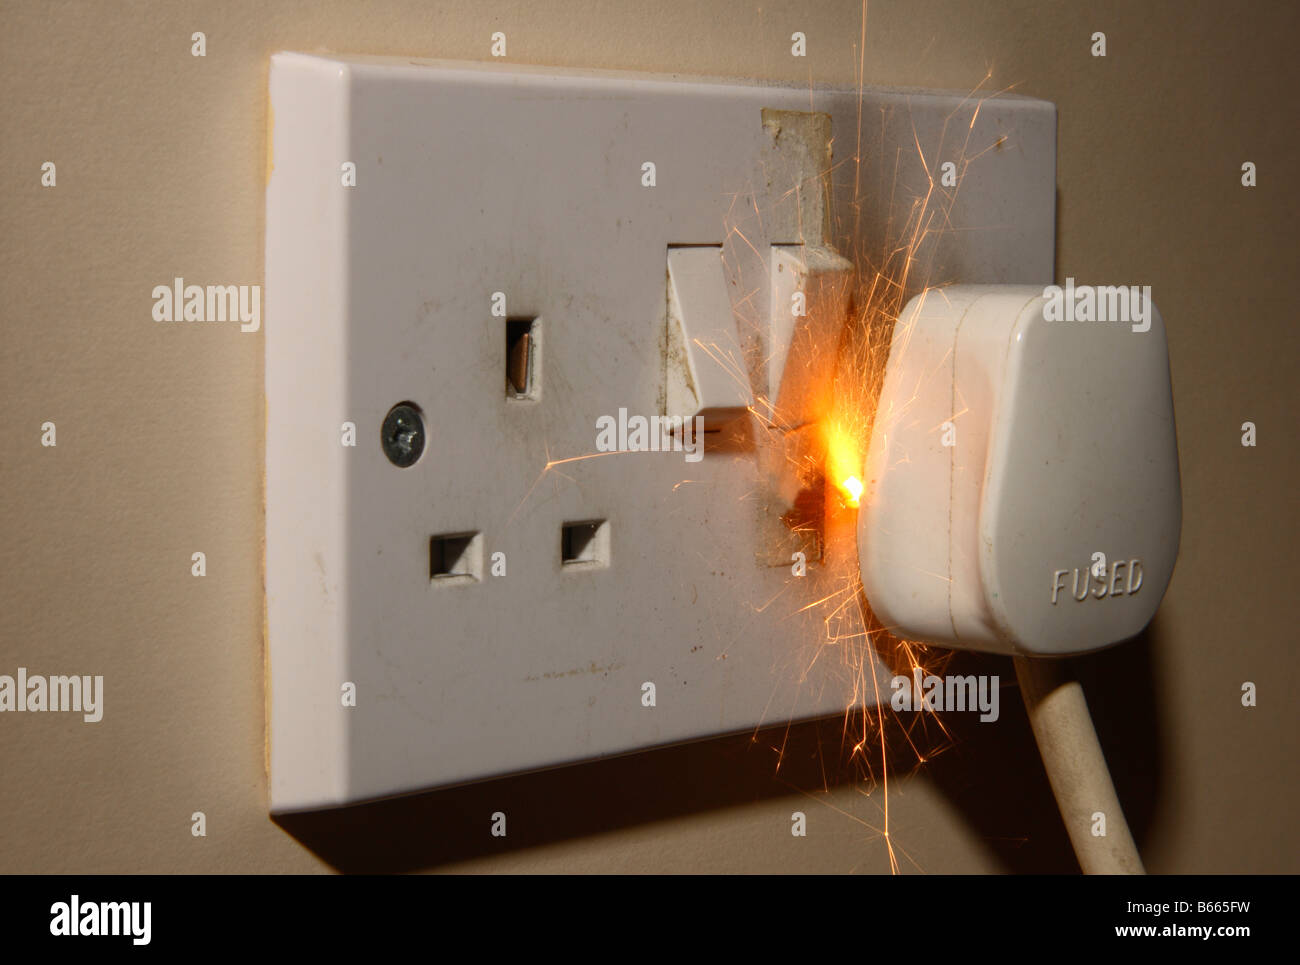 A fire in a 13a 240v electrical mains plug and socket stock photo a fire in a 13a 240v electrical mains plug and socket freerunsca Images